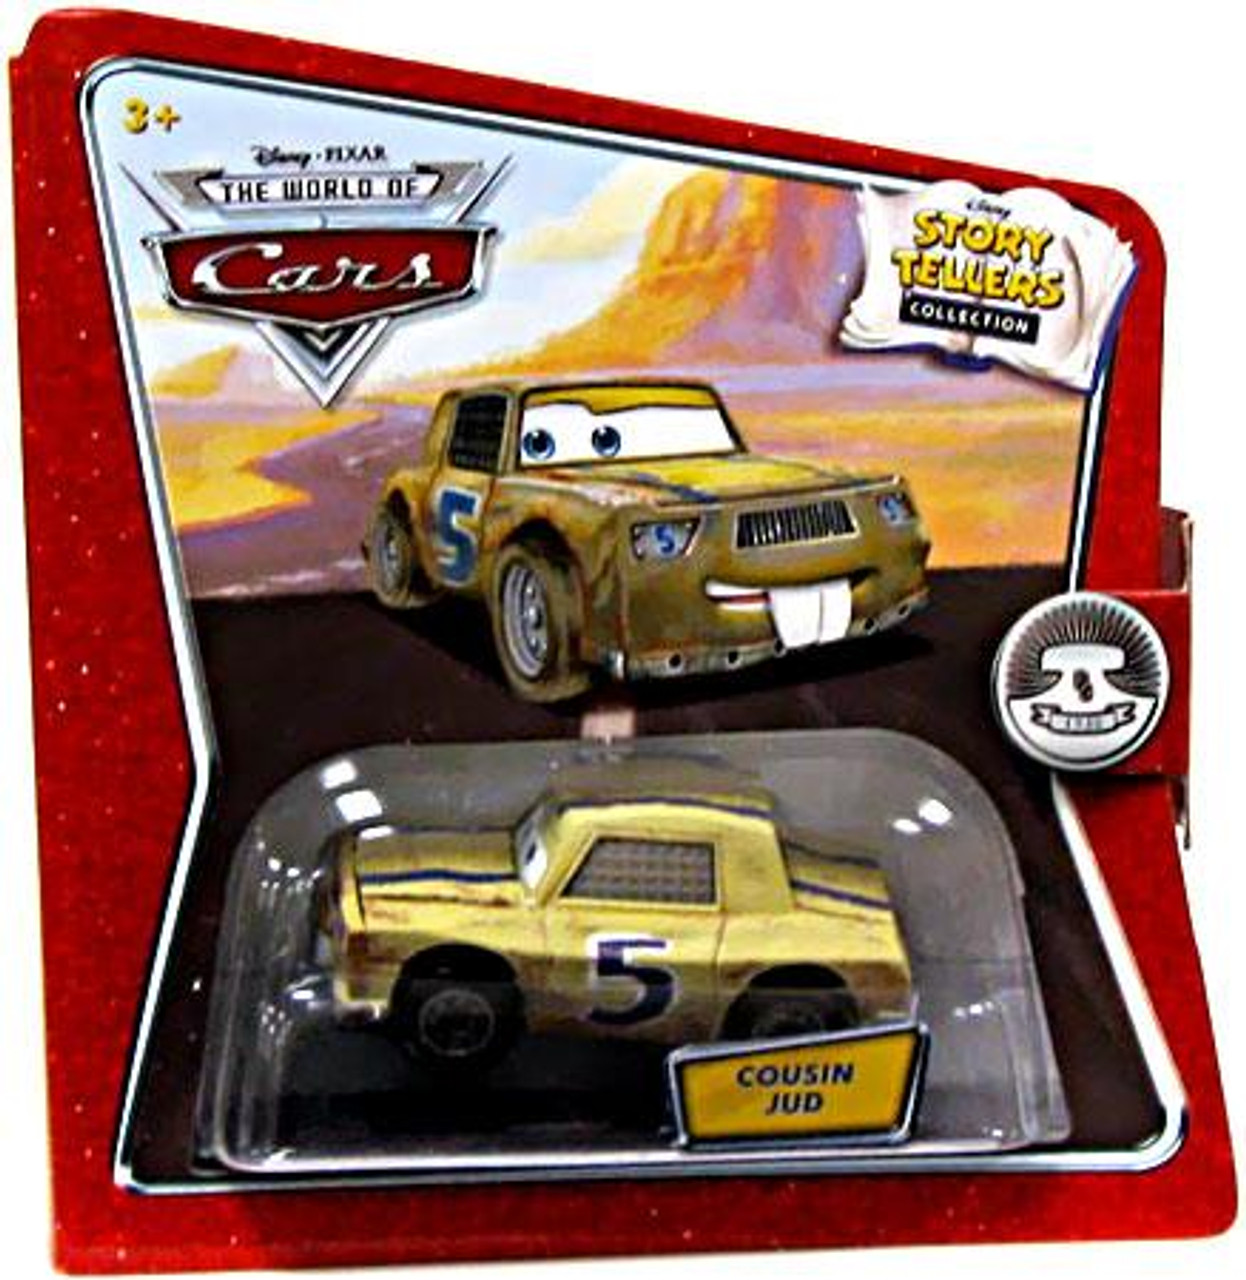 Disney Cars The World of Cars Story Tellers Cousin Jud Diecast Car